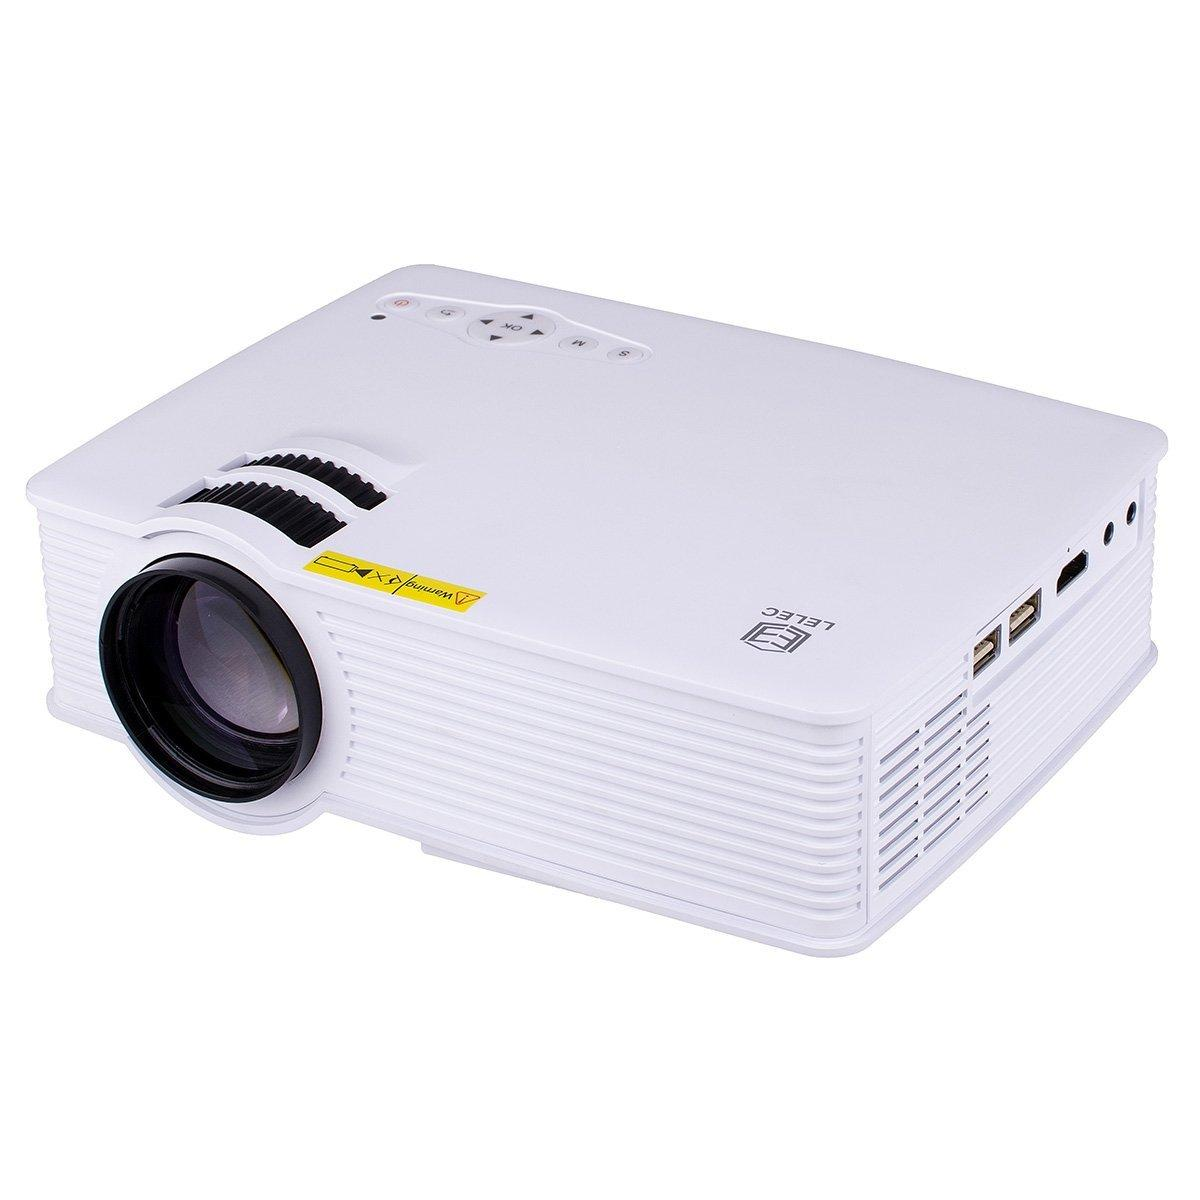 $79.19 LELEC Ultralight Portable HiFi Stereo HD Image LED Projector